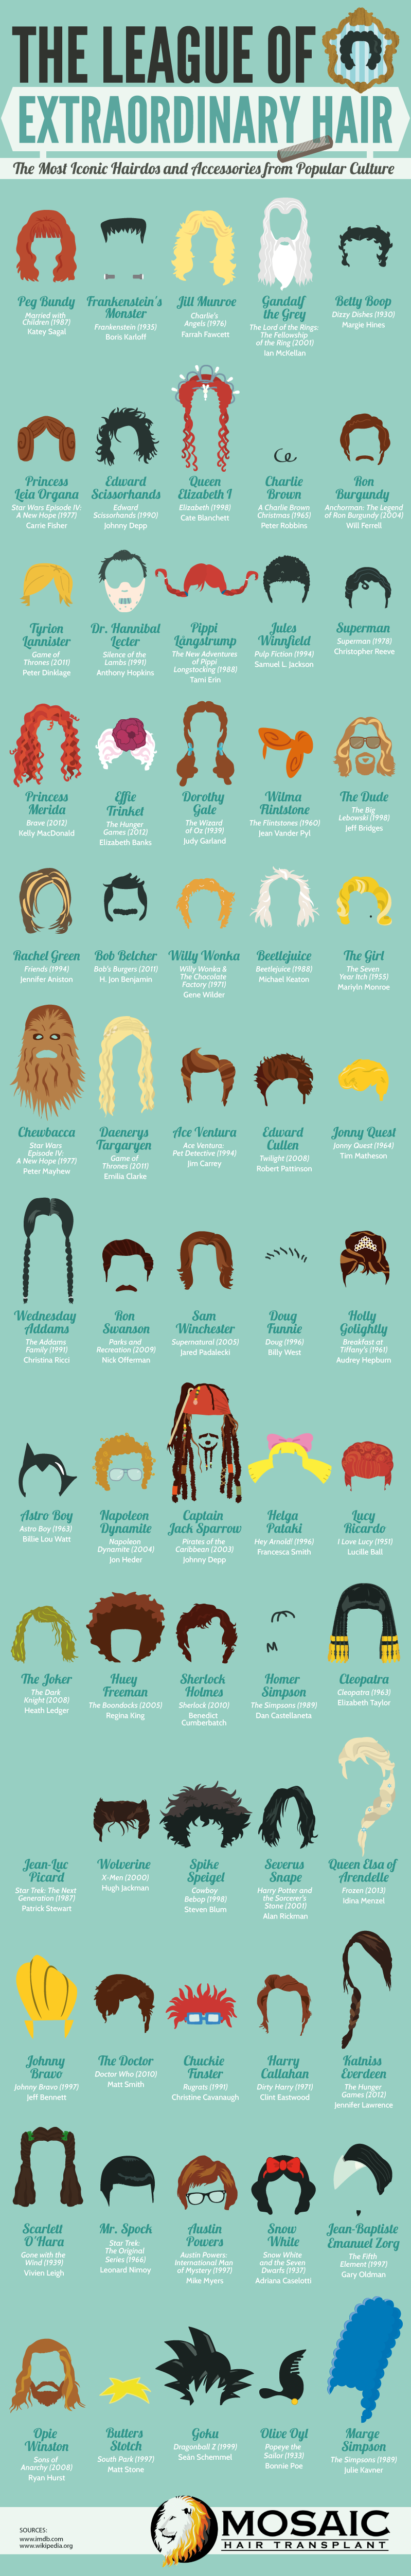 The League of Extraordinary Hair